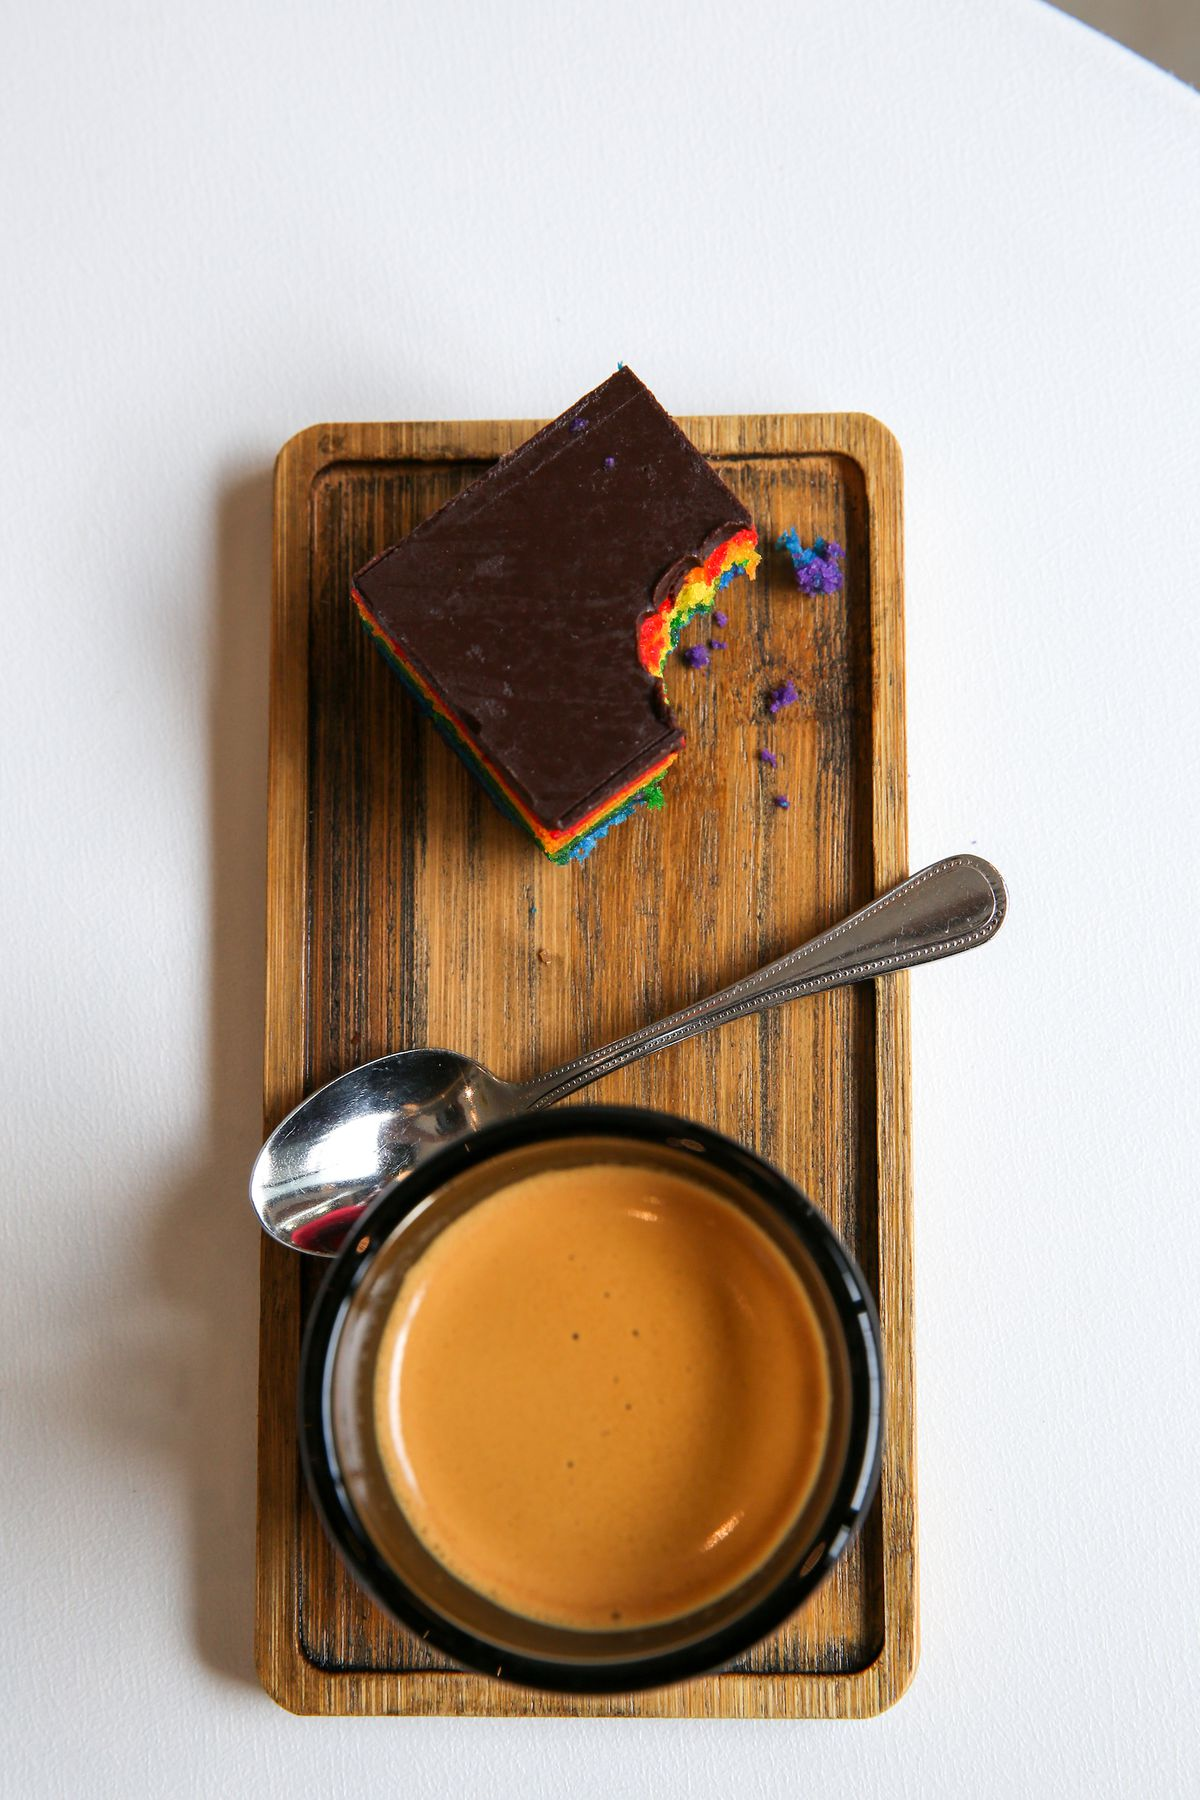 A wooden board that holds a cup up piece of rainbow cake, a silver spoon, a small mug with an espresso.